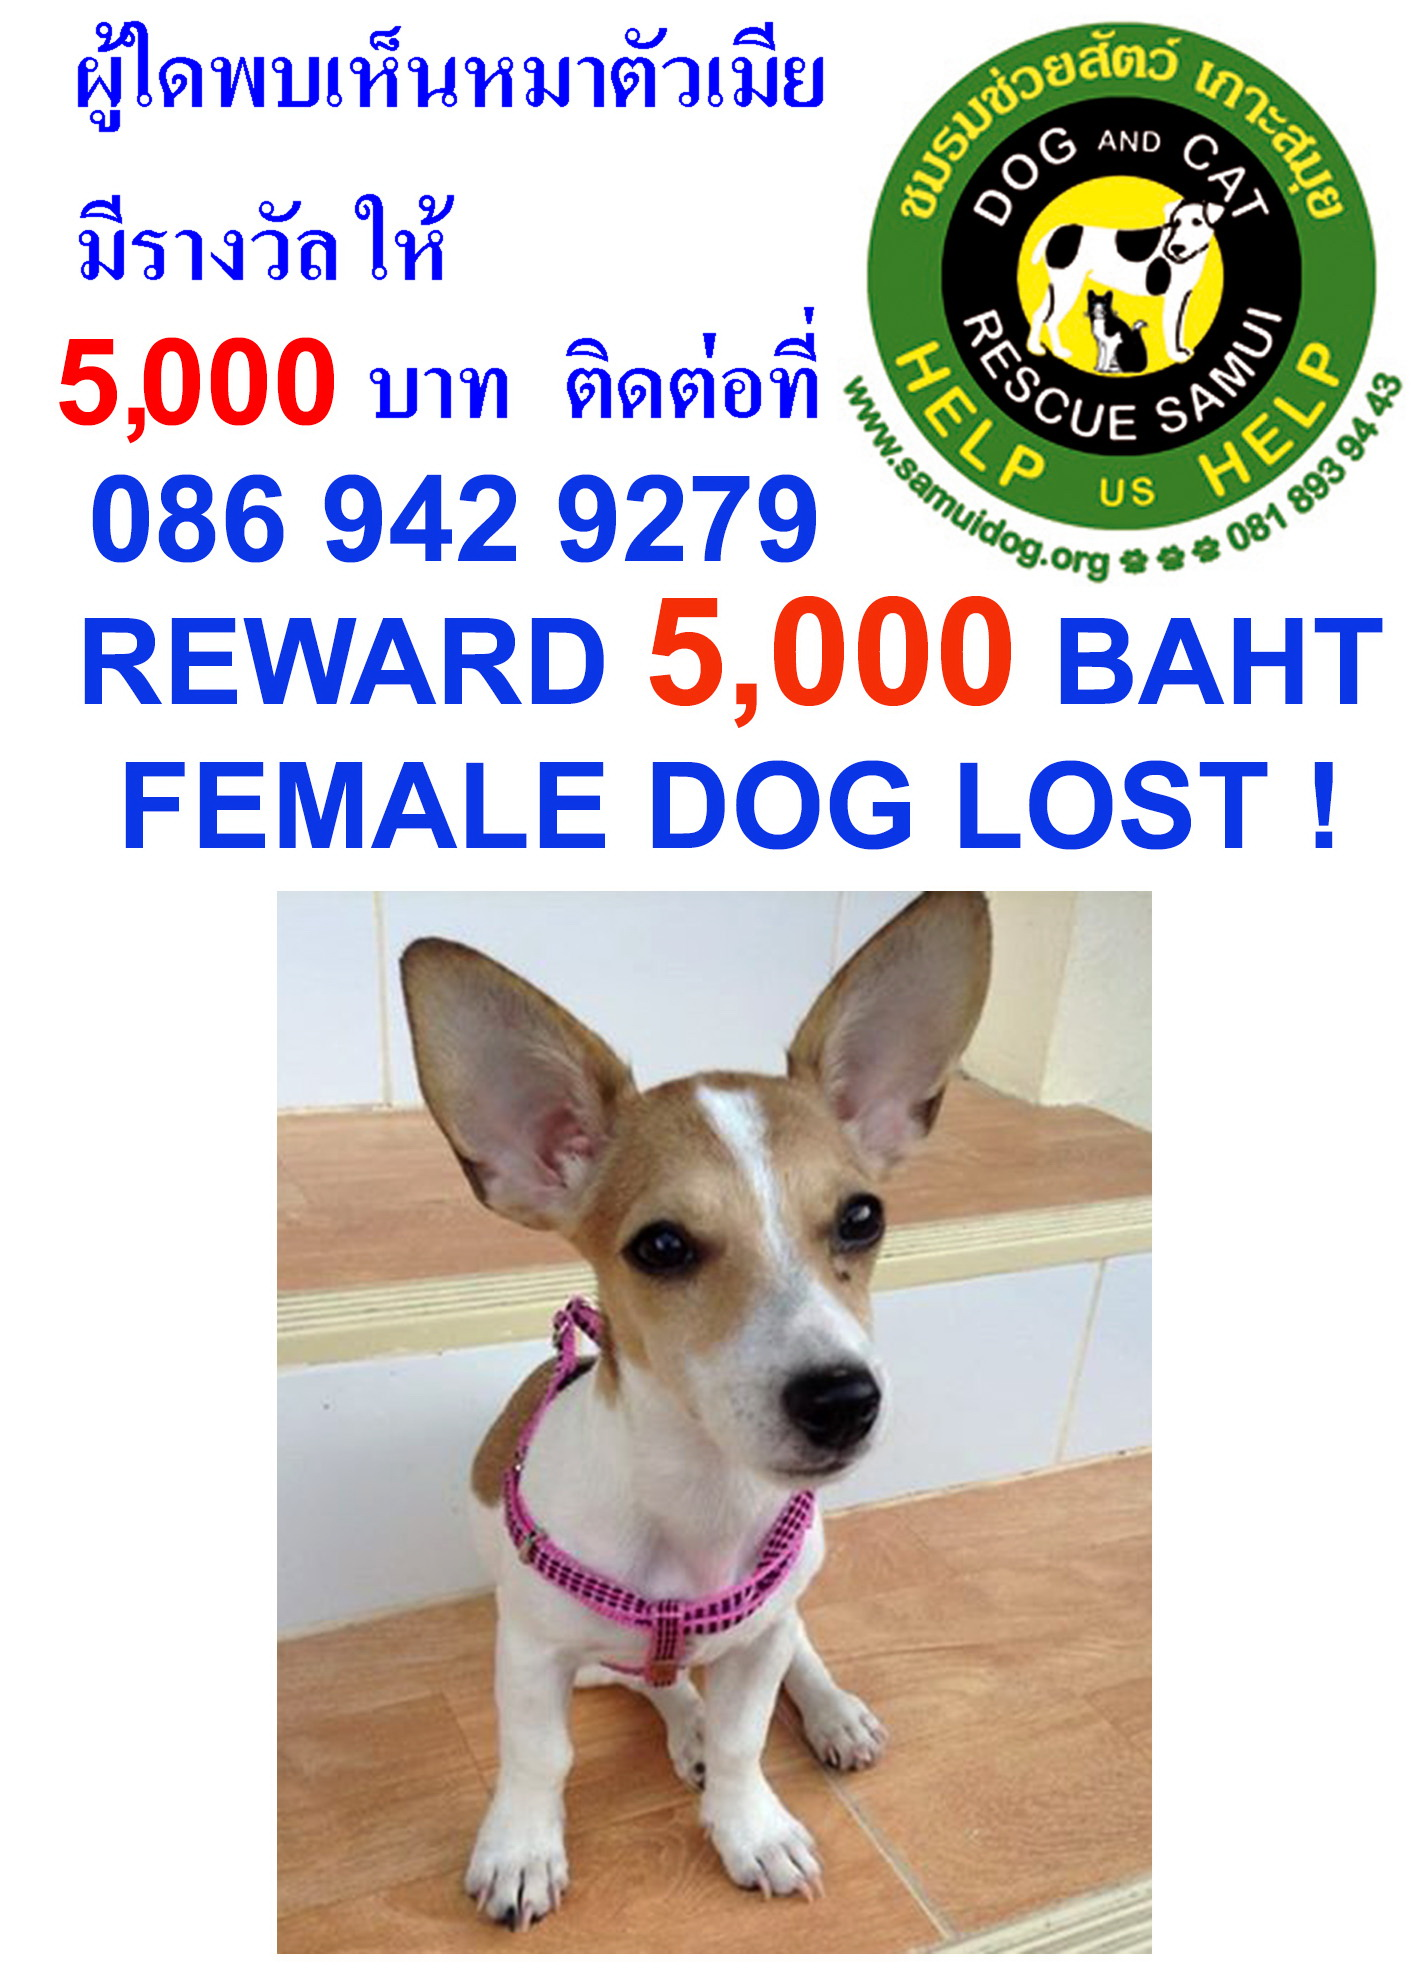 Missing Jack Russell called Jeanie – reward | Samui Times